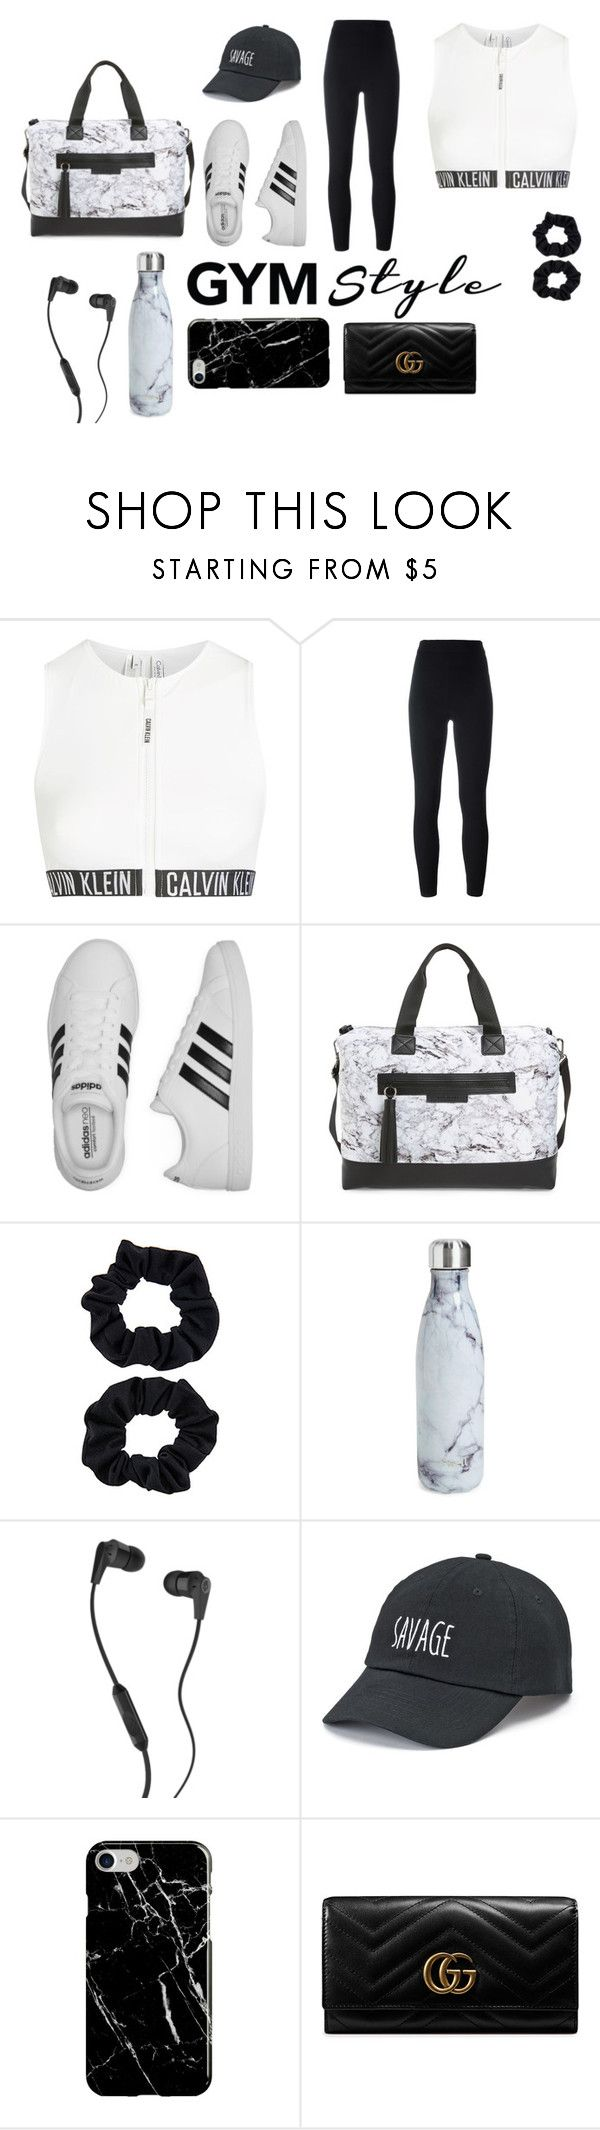 """bandw"" by carolinecorradine ❤ liked on Polyvore featuring Calvin Klein, Yeezy by Kanye West, adidas, Balsa 201, S'well, Skullcandy, SO, Recover, Gucci and gymessentials"